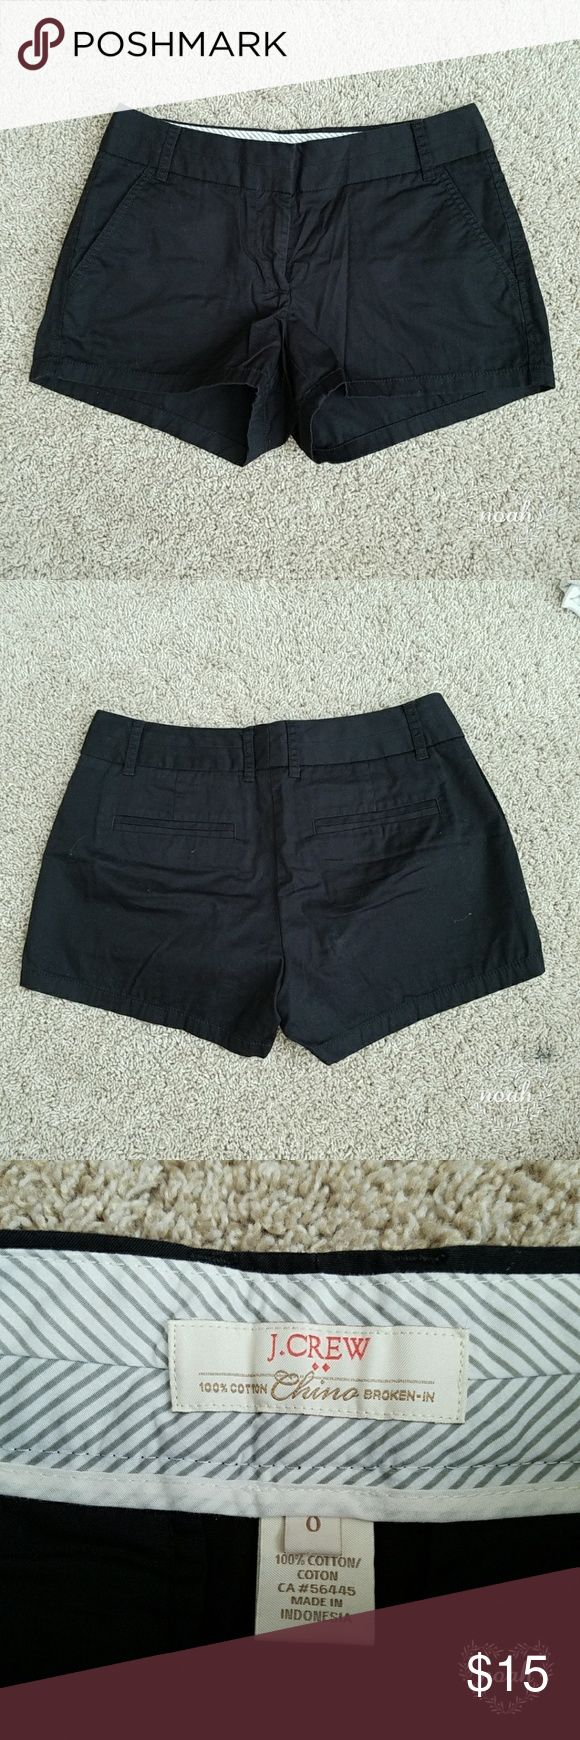 J. Crew black chinos Solid black chino shorts from J. Crew. 2 inch inseam, no damage J. Crew Shorts